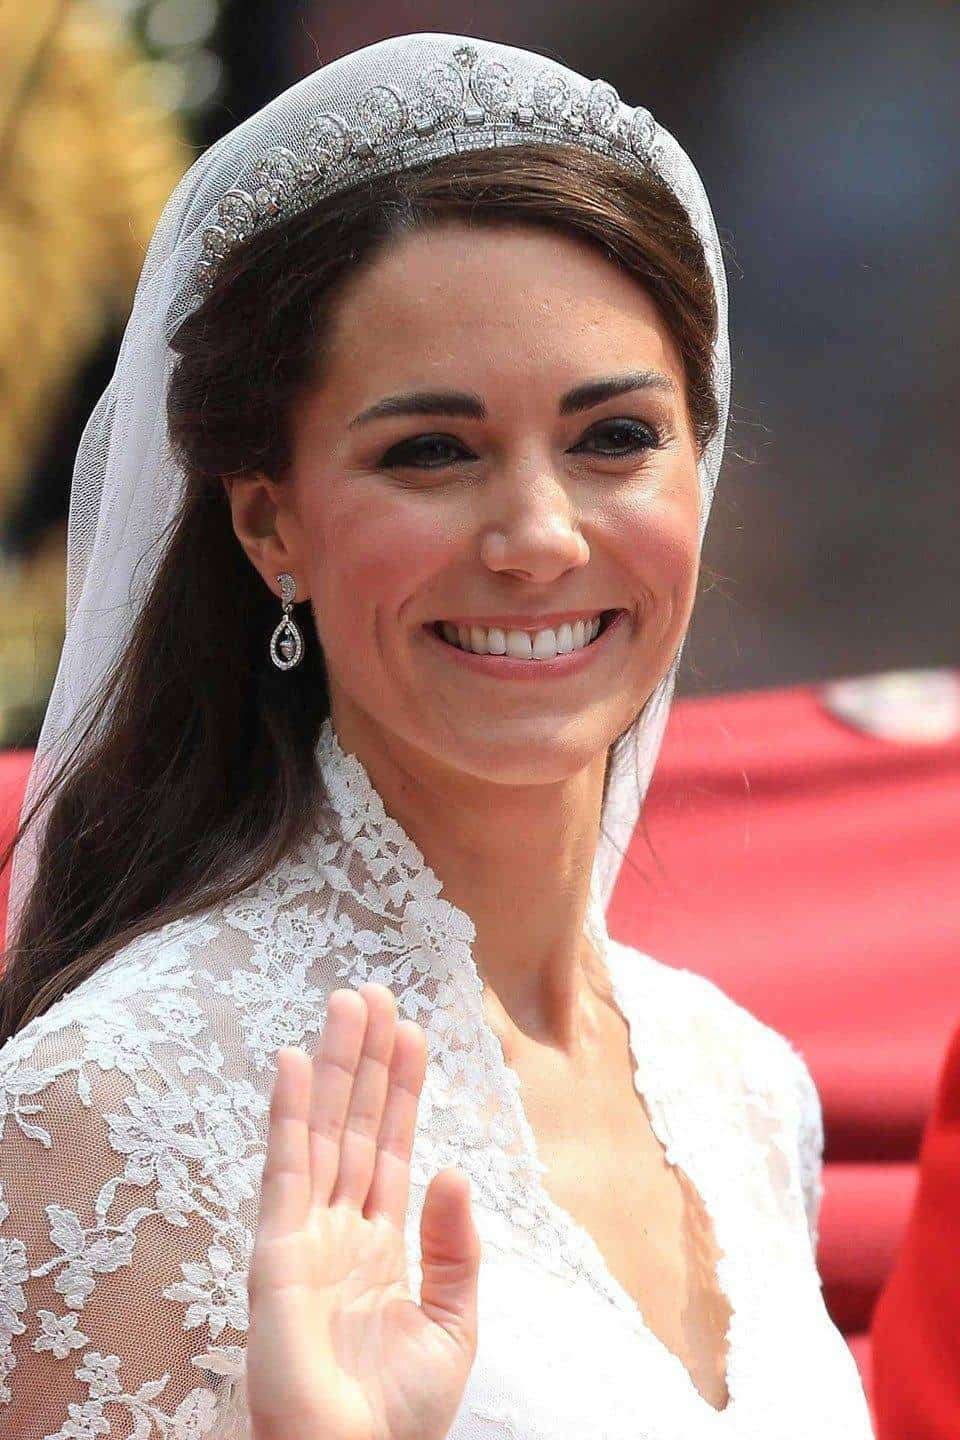 Cartier Halo tiara Duchess of Cambridge